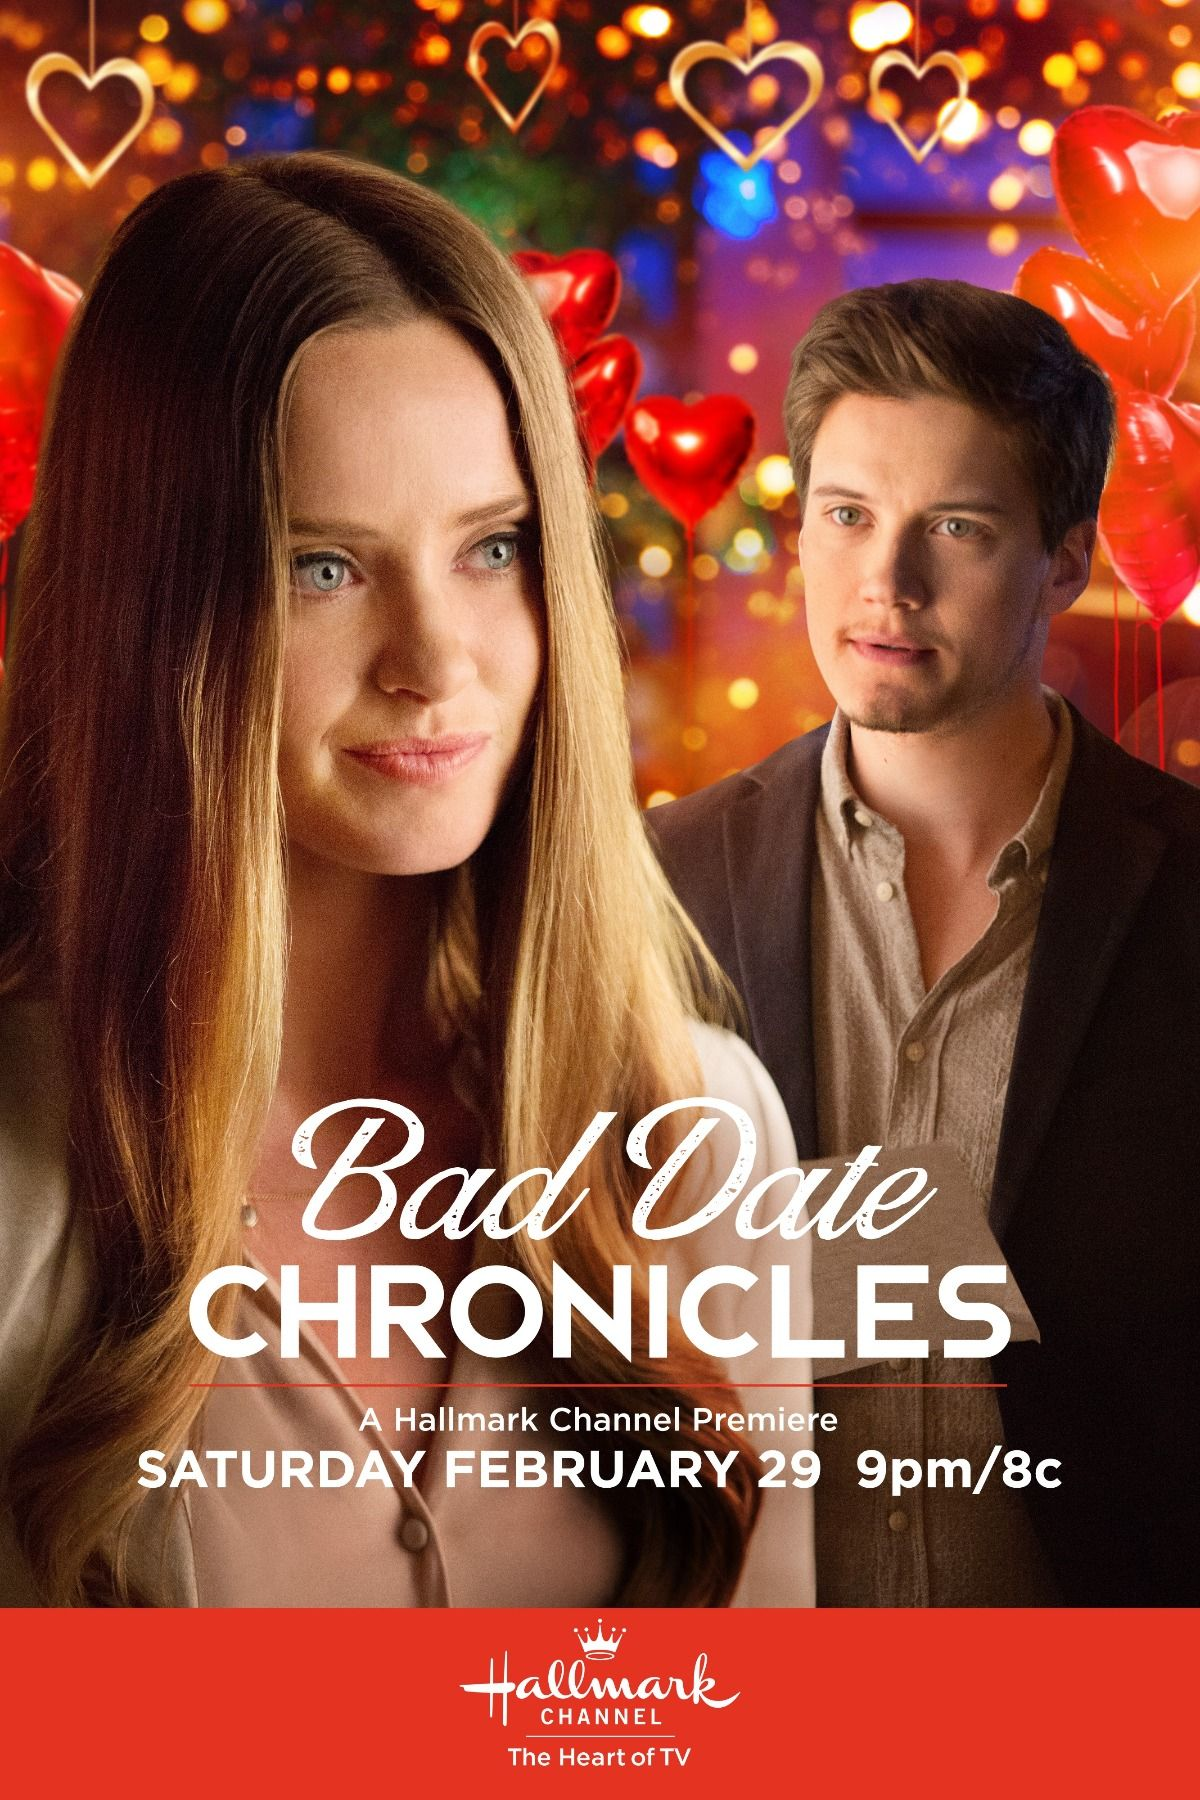 Can You Get Hallmark Channel On Hulu An Anonymous Bad Date Horror Story Brings Leigh Merritt Patteron And Conner Justin Kelly Together In 2020 Hallmark Channel Hallmark Movies Hallmark Movies Romance